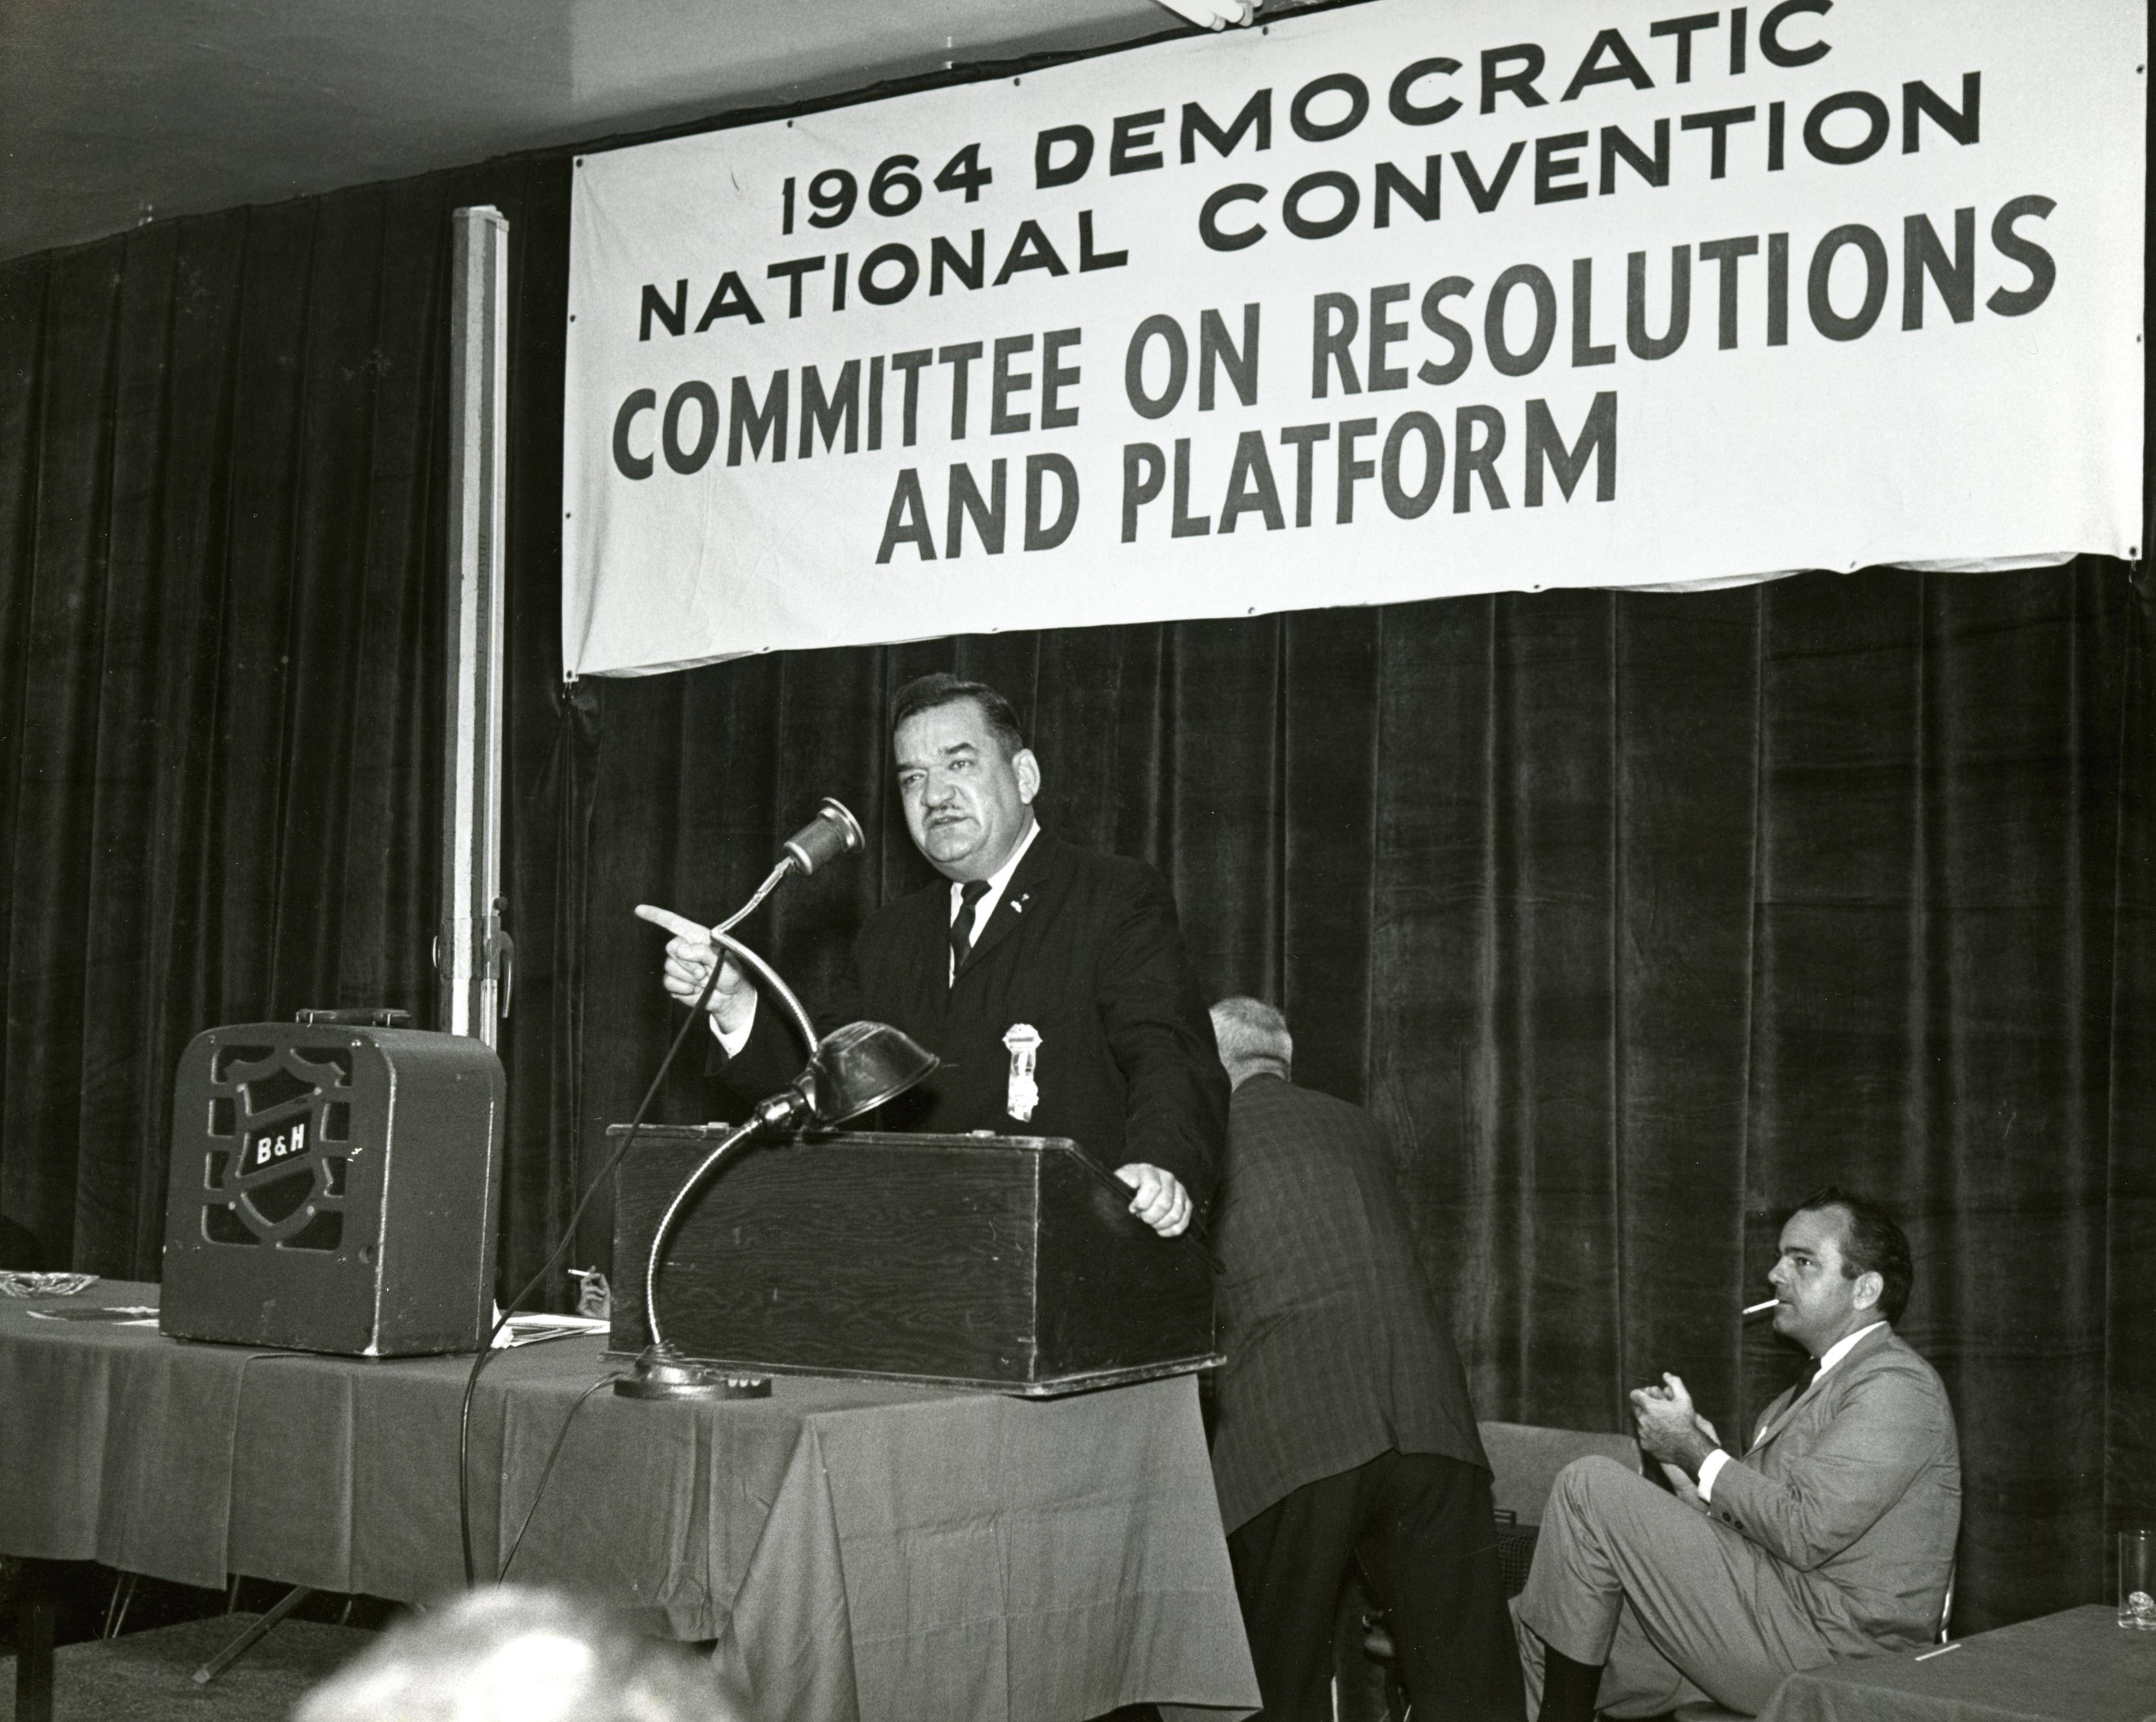 <table class=&quot;lightbox&quot;><tr><td colspan=2 class=&quot;lightbox-title&quot;>Representative Zablocki Speaks</td></tr><tr><td colspan=2 class=&quot;lightbox-caption&quot;>Representative Zablocki addresses the Committee on Resolutions and Platform at the 1964 Democratic National Convention in Chicago. </td></tr><tr><td colspan=2 class=&quot;lightbox-spacer&quot;></td></tr><tr class=&quot;lightbox-detail&quot;><td class=&quot;cell-title&quot;>Source: </td><td class=&quot;cell-value&quot;>Department of Special Collections and University Archives, Marquette University.<br /><a href=&quot;http://cdm16280.contentdm.oclc.org/cdm/singleitem/collection/p15072coll1/id/39/rec/67&quot; target=&quot;_blank&quot;>Marquette University</a></td></tr><tr class=&quot;filler-row&quot;><td colspan=2>&nbsp;</td></tr></table>